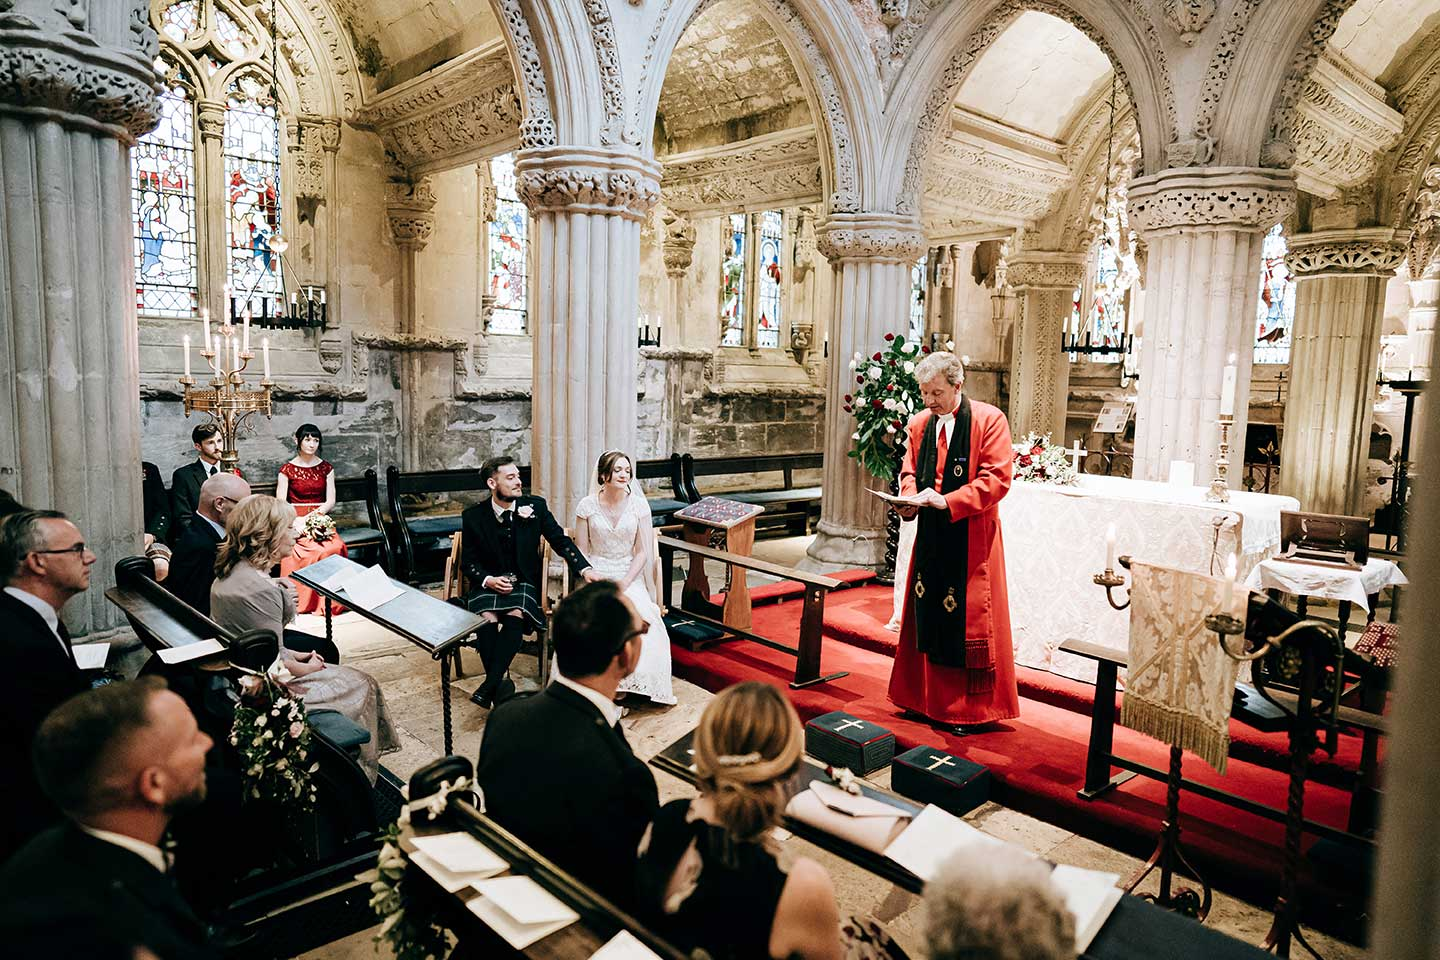 Inside Rosslyn Chapel during a wedding ceremony, Scotland Wedding Photograpy